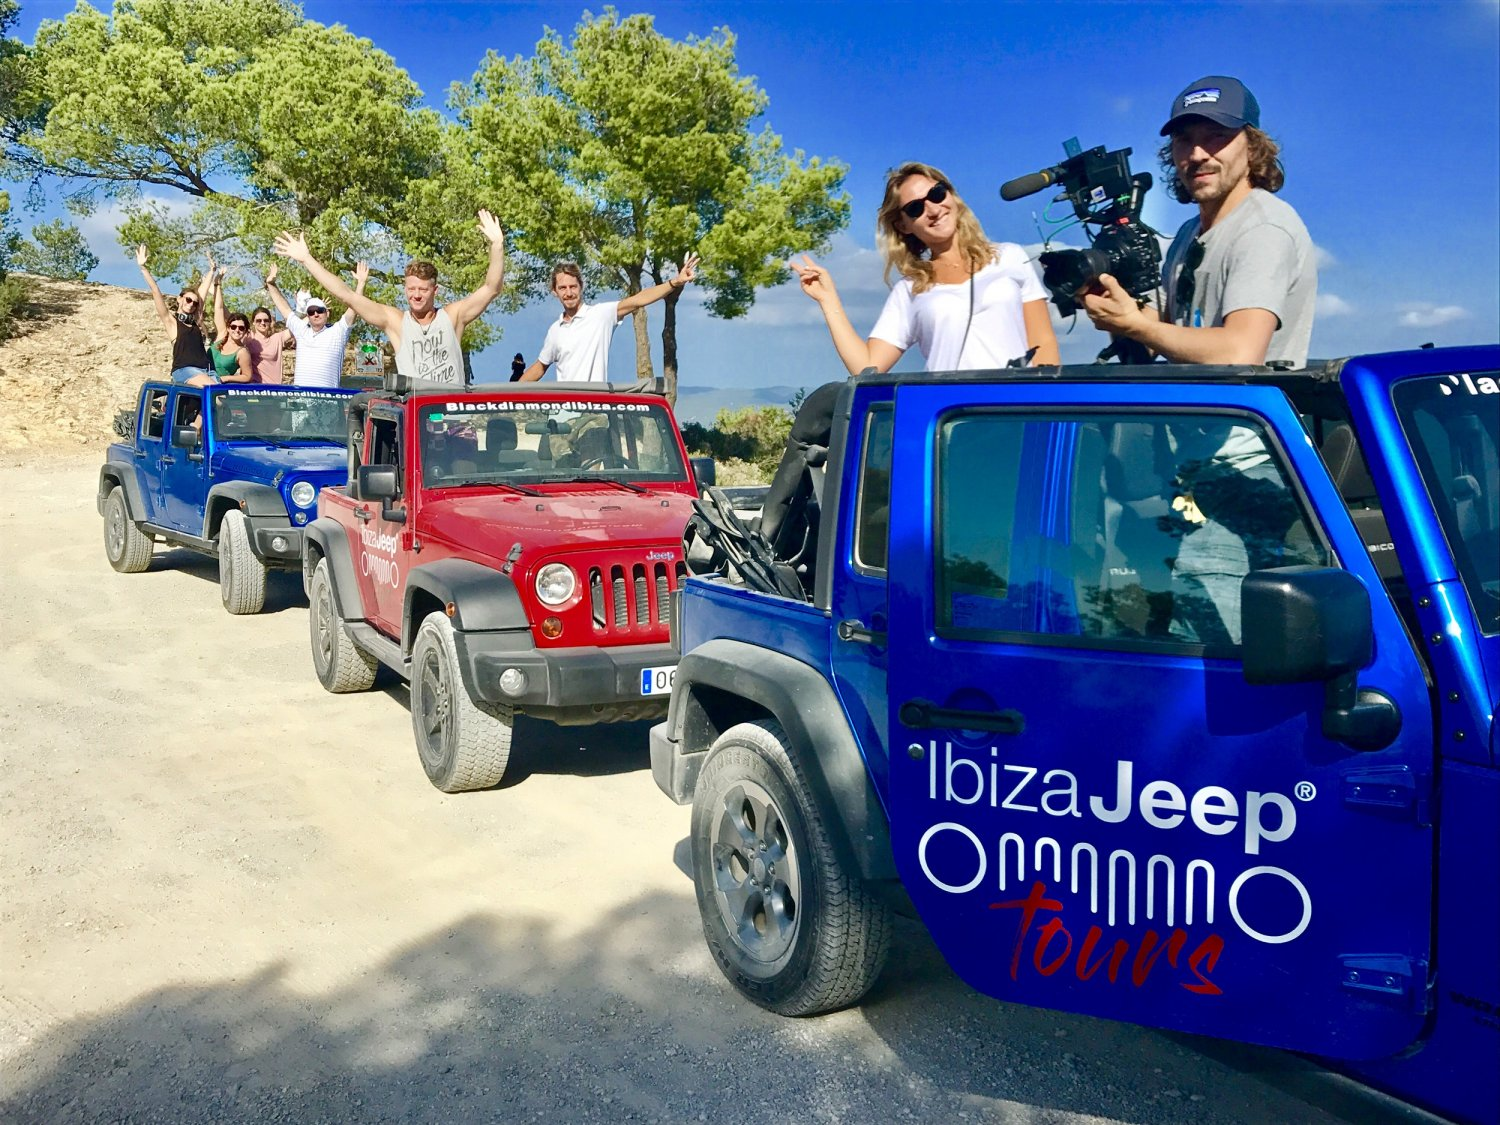 f5d1b49d46 Guided full-day tours where you can get behind the wheel of a stylish Jeep  Wrangler and see incredible beauty spots on Formentera.